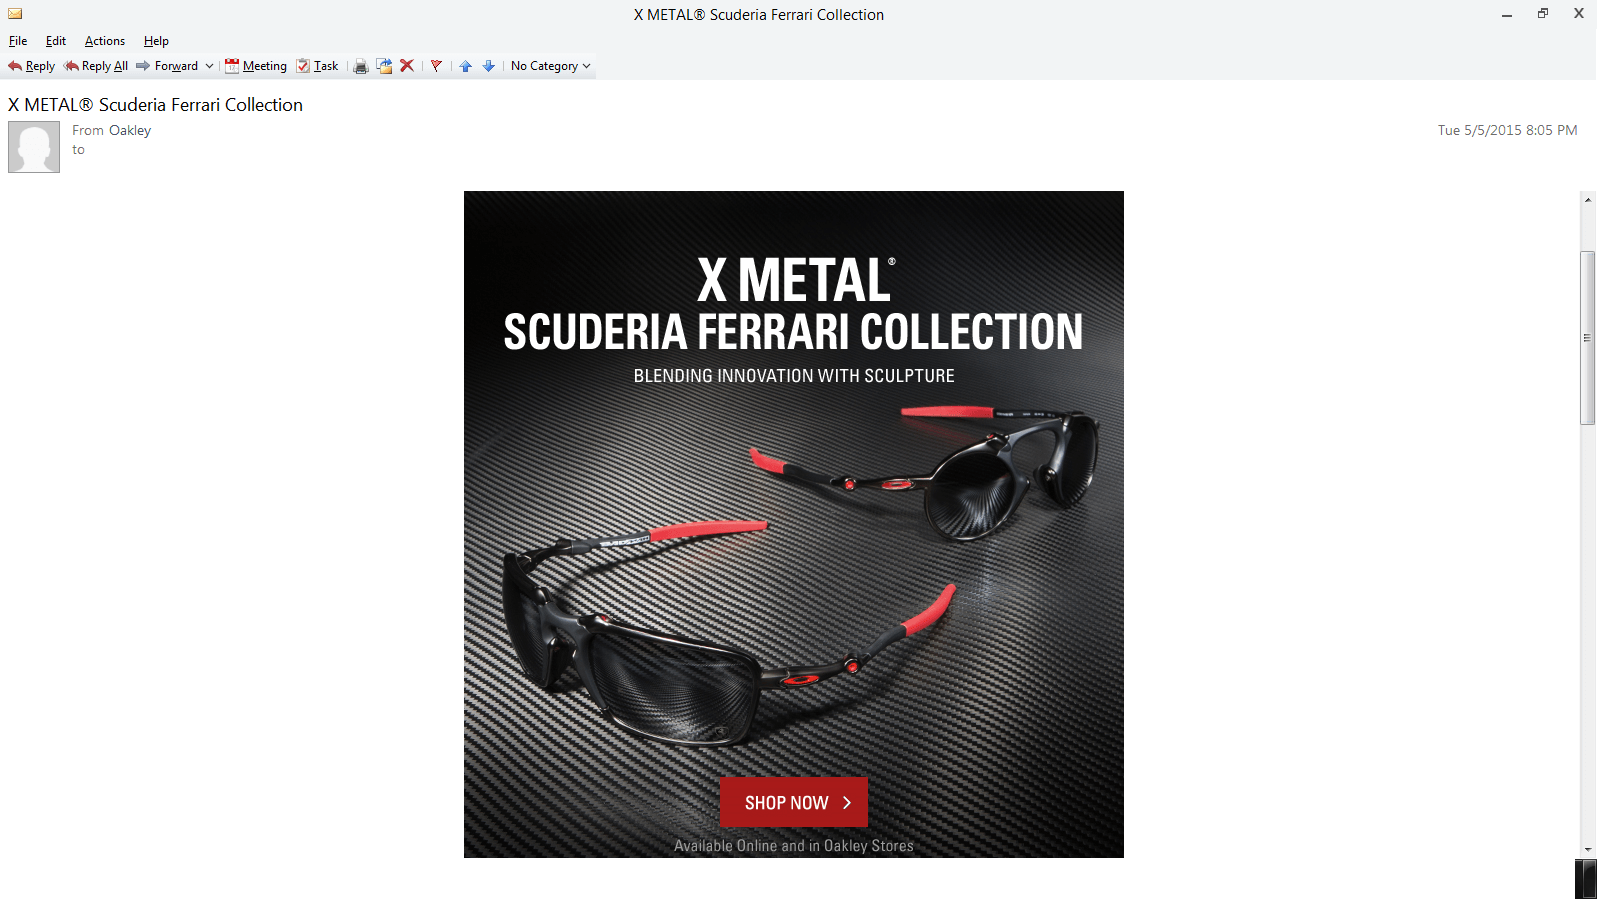 Mad/Badman not X-Metal? - ferrari email.png